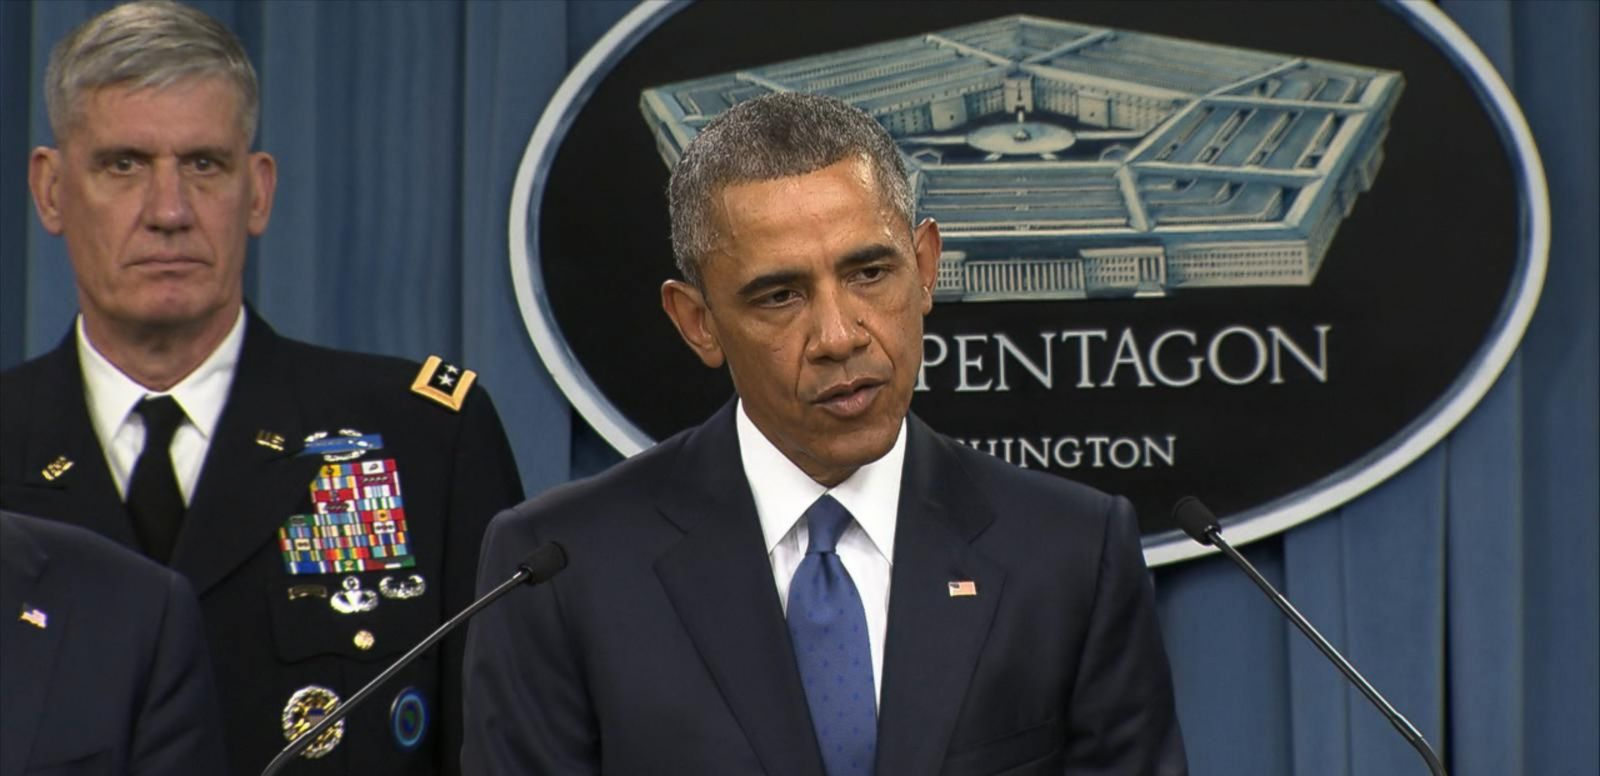 VIDEO: President Obama on Fight Against ISIS